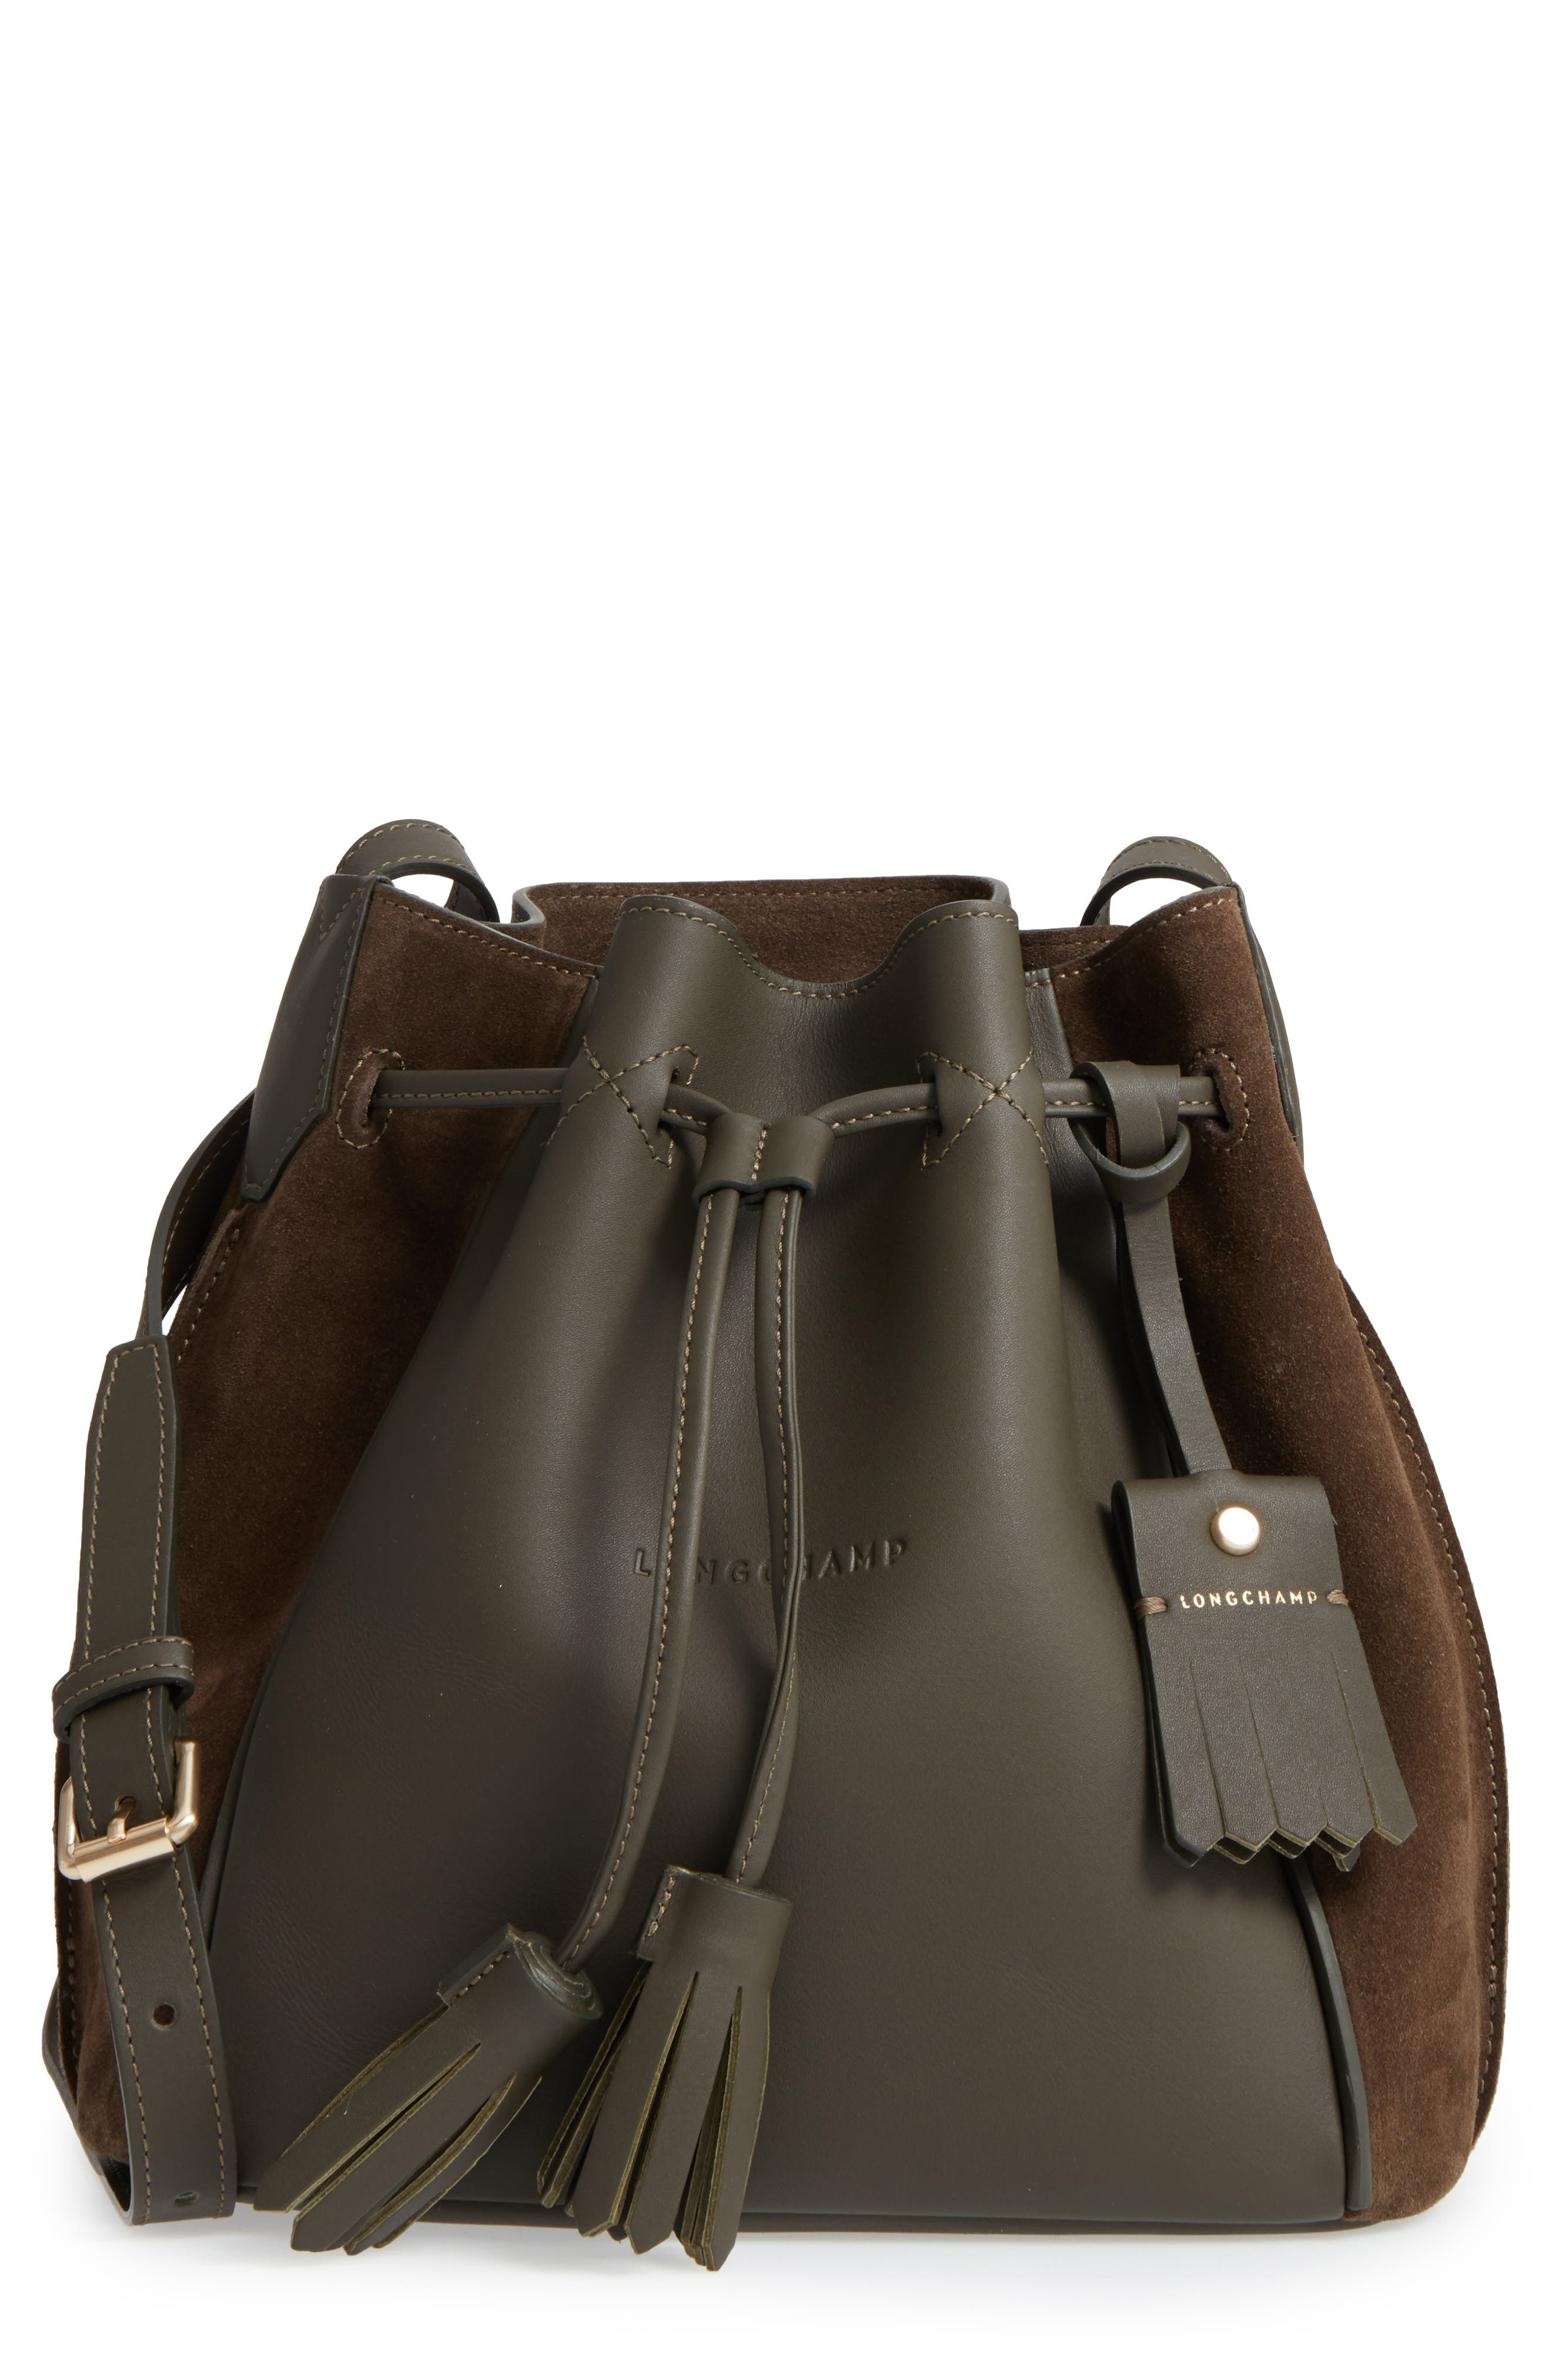 Longchamp Small Penelope Leather Tote